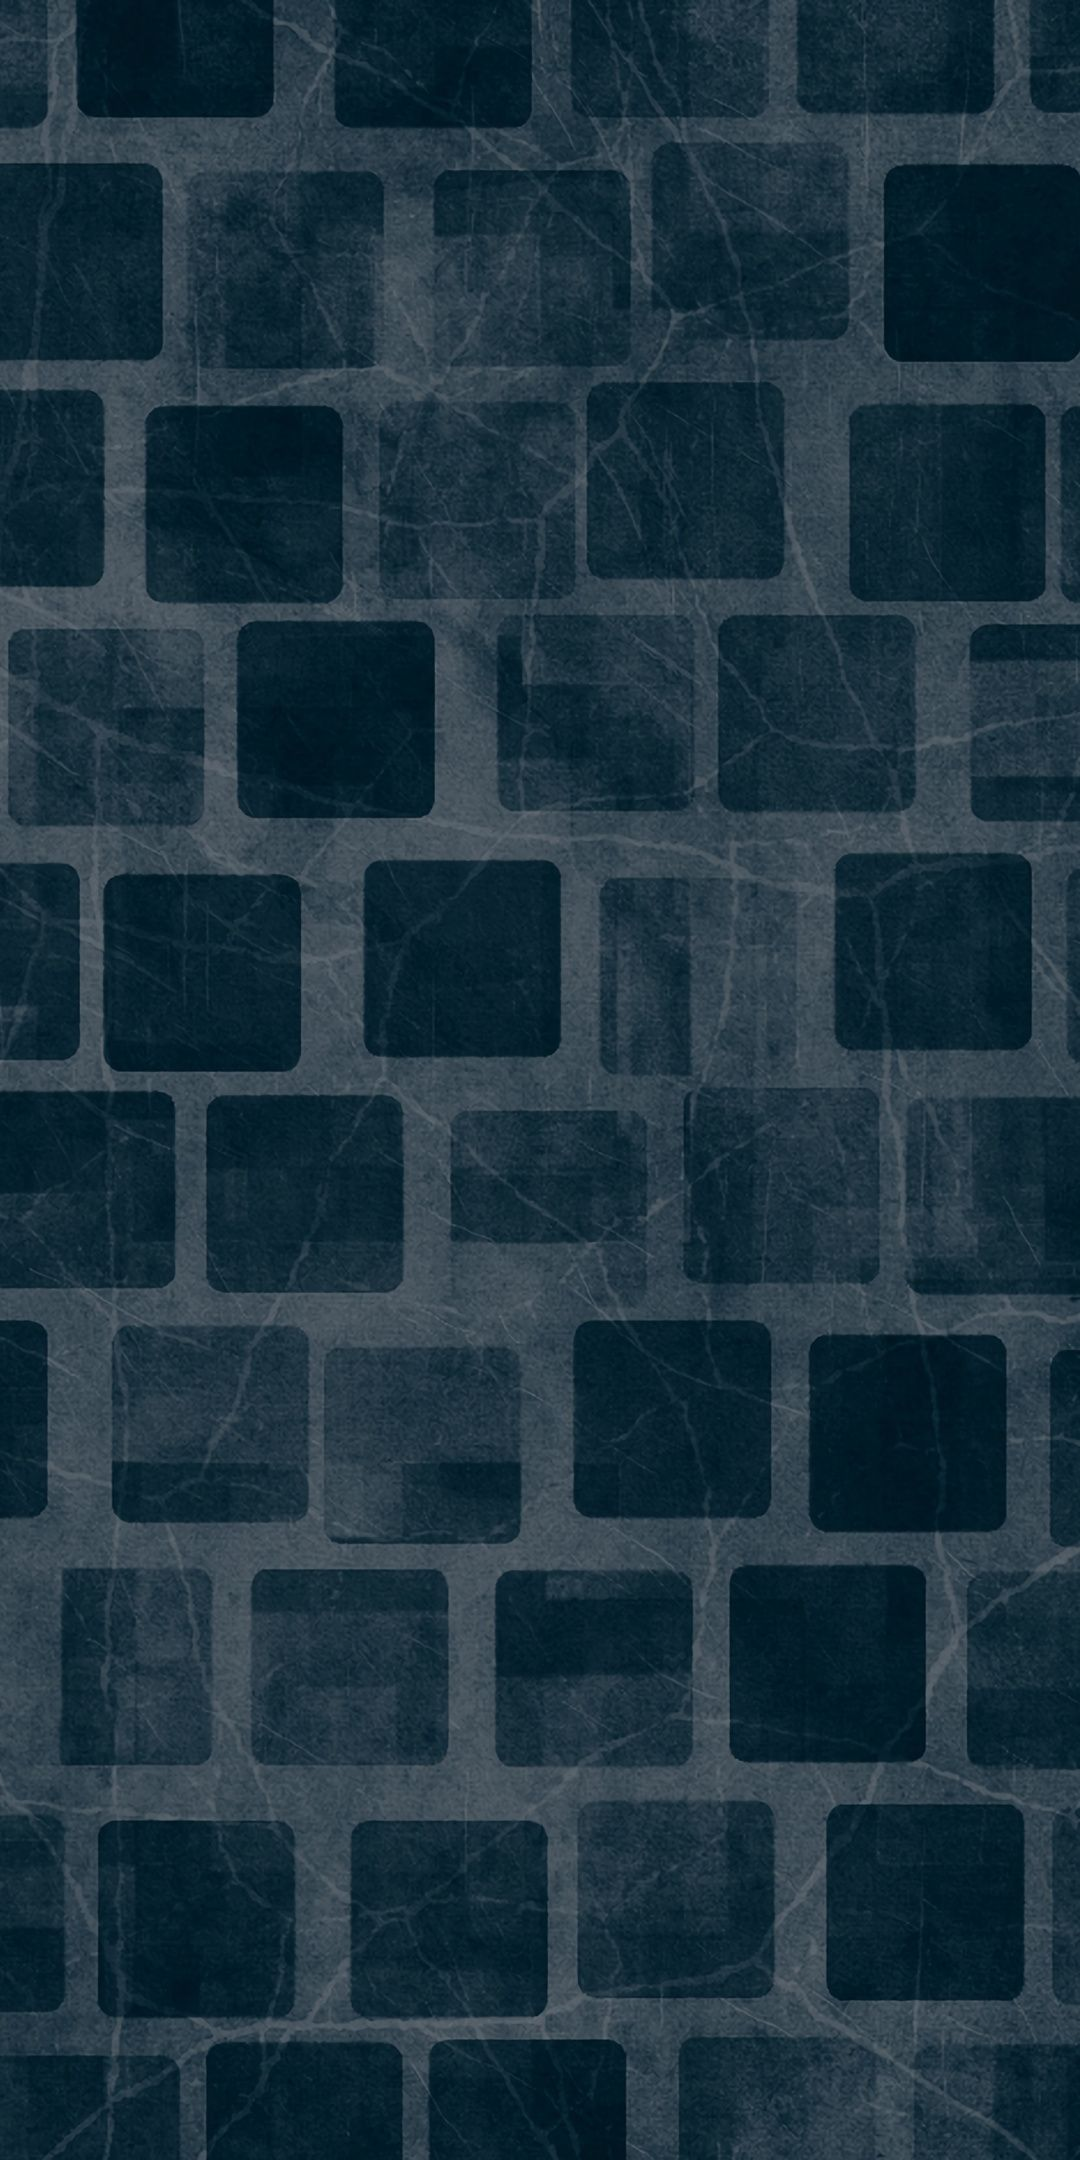 Texture, squares, patterns, wall, 1080x2160 wallpaper